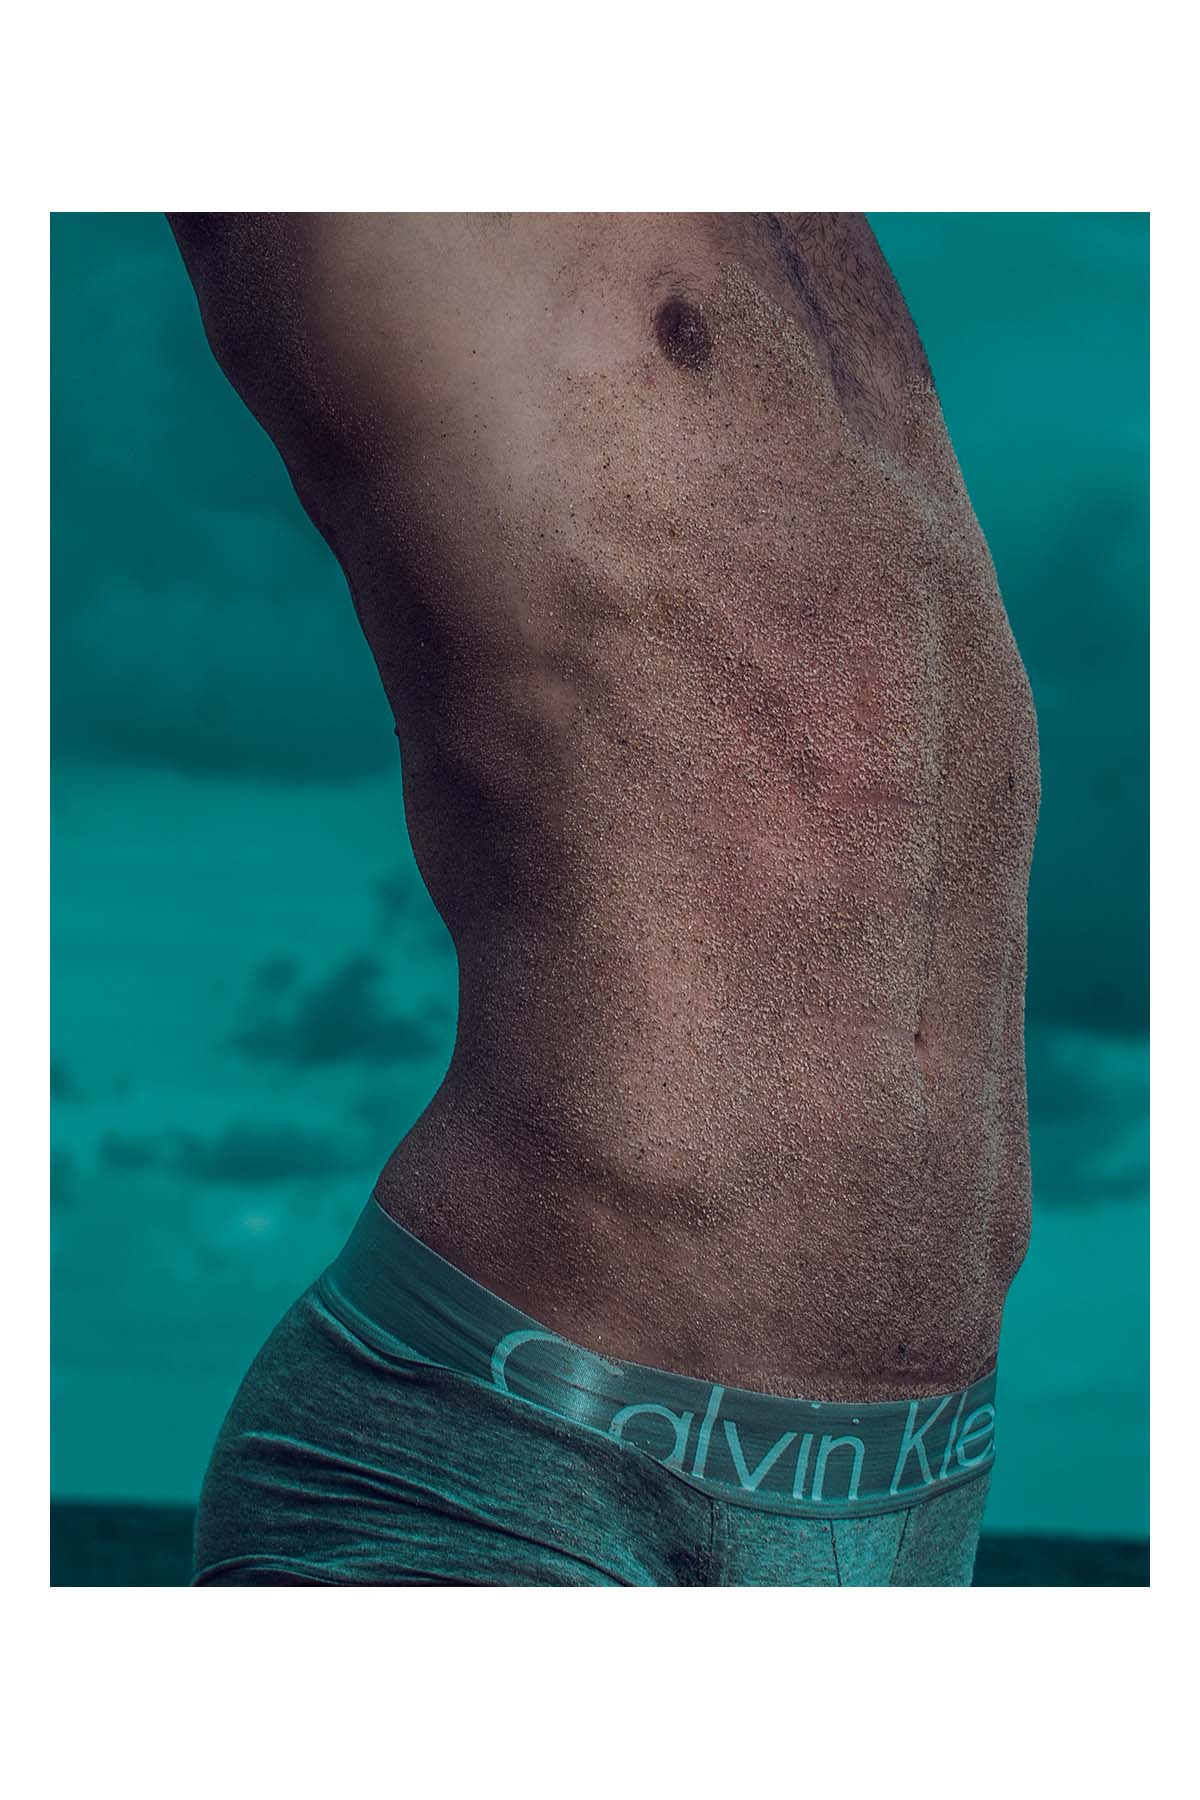 Kayo Kennedy by Wellington Jan for Brazilian Male Model